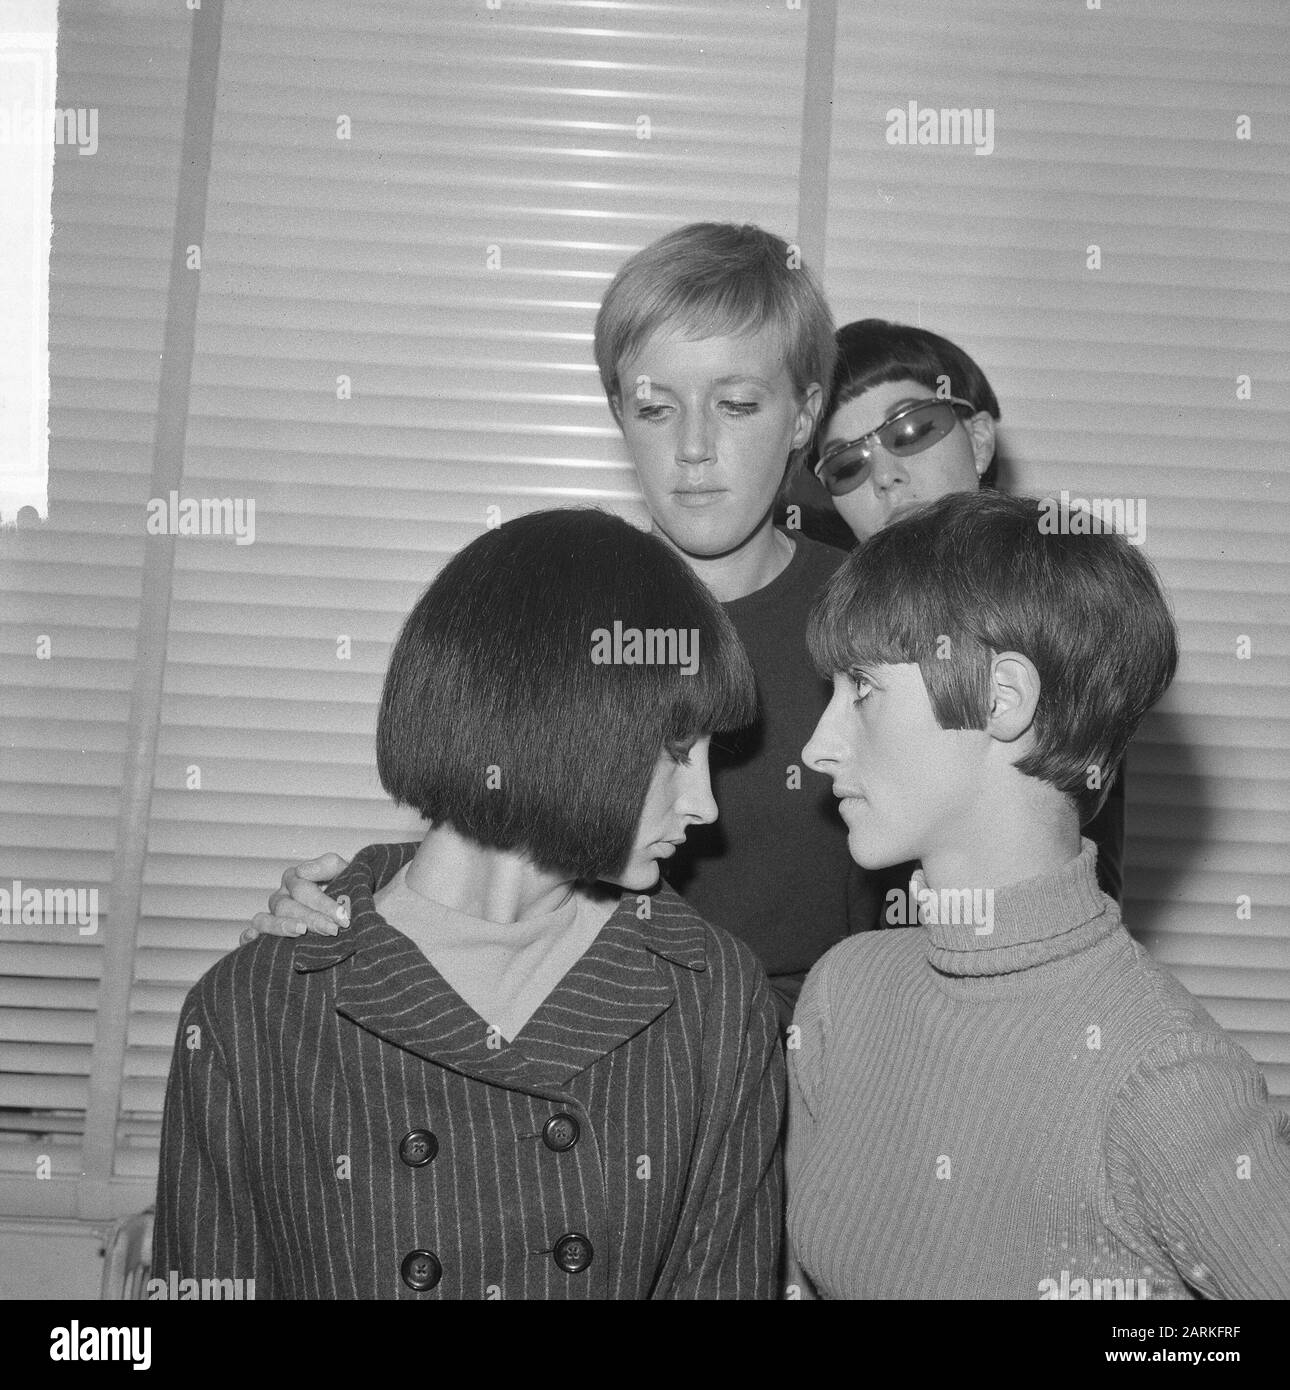 Free Hair Style At Hairdresser Mario Date September 3 1965 Keywords Hairdressers Stock Photo Alamy